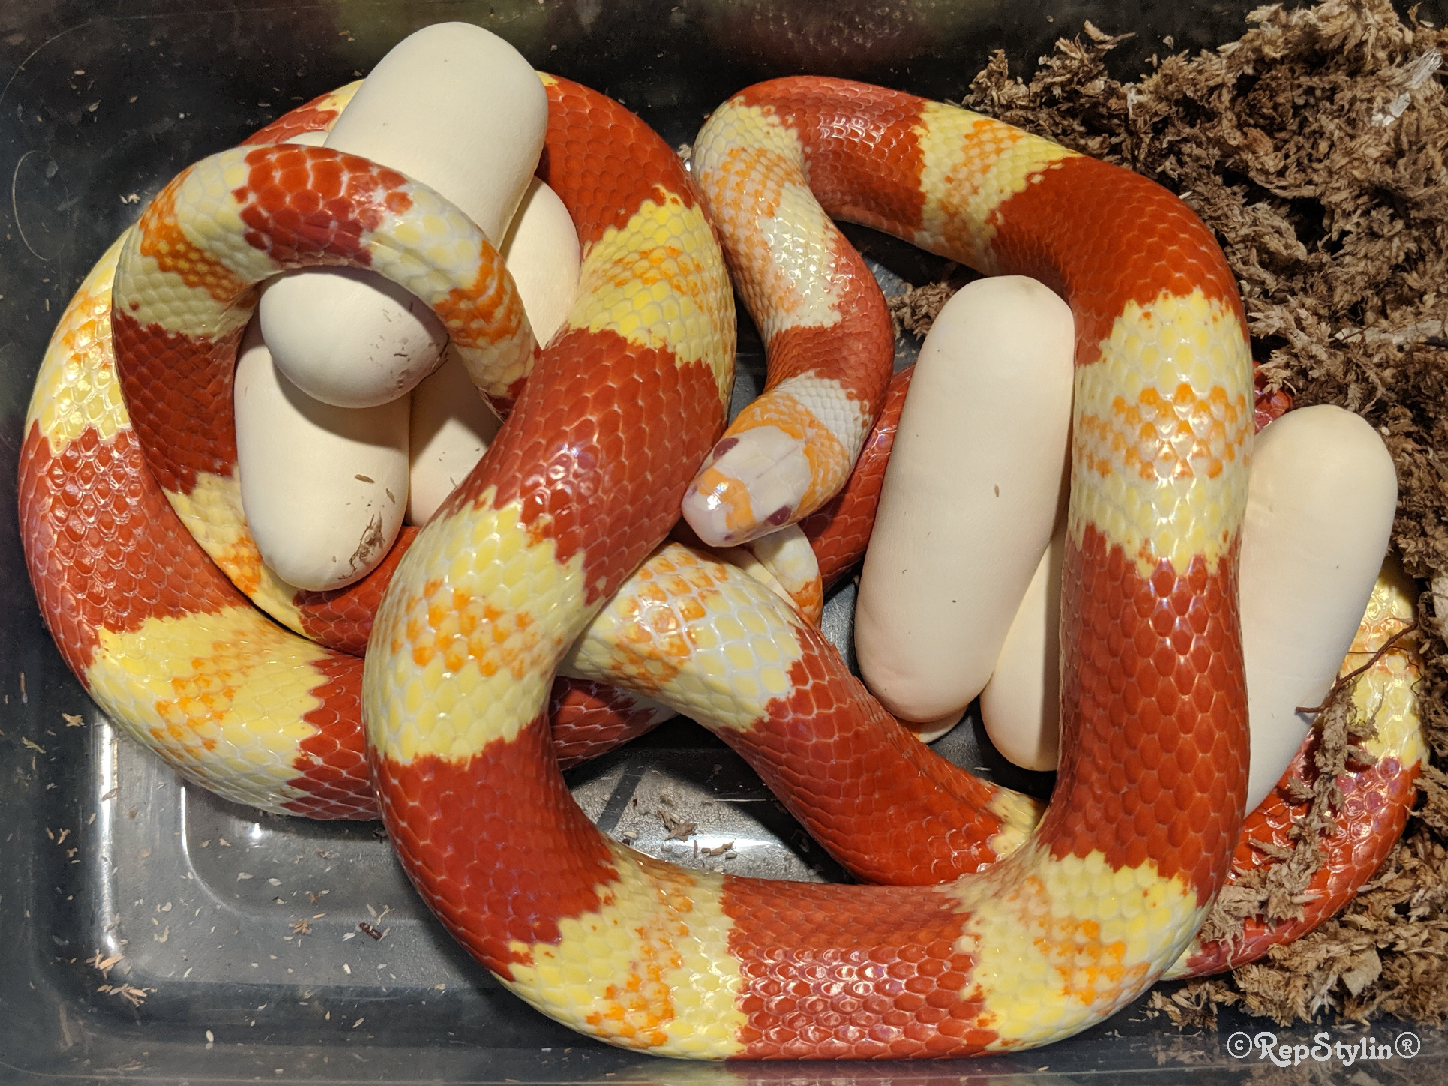 Snake Breeding Projects at RepStylin®